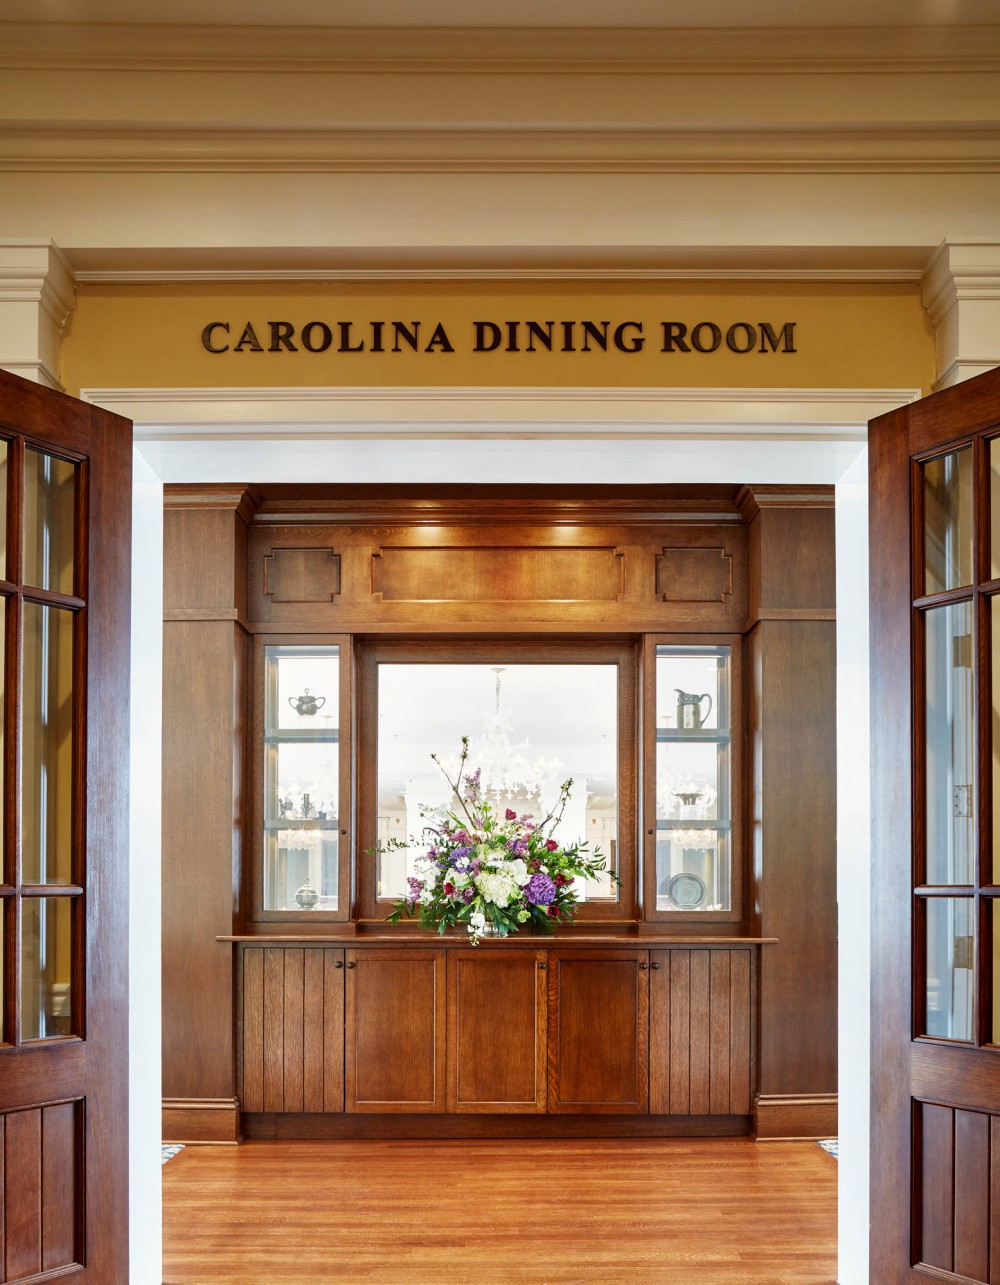 Carolina dining room pinehurst resort glav holmes for Dining room entrance